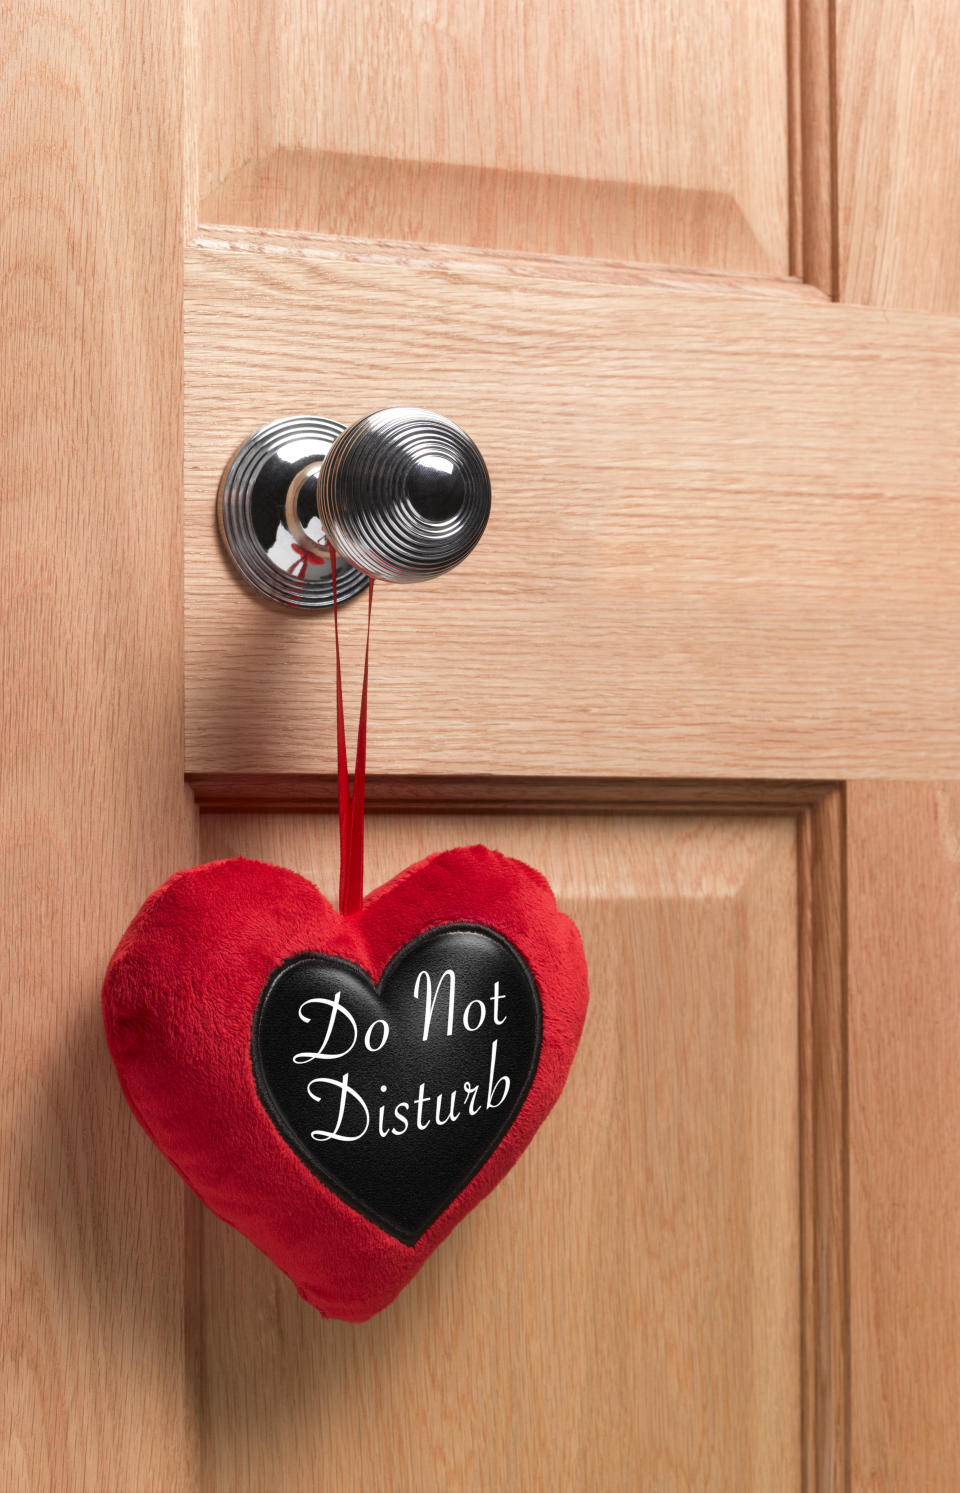 Sexually active 'do not disturb sign'